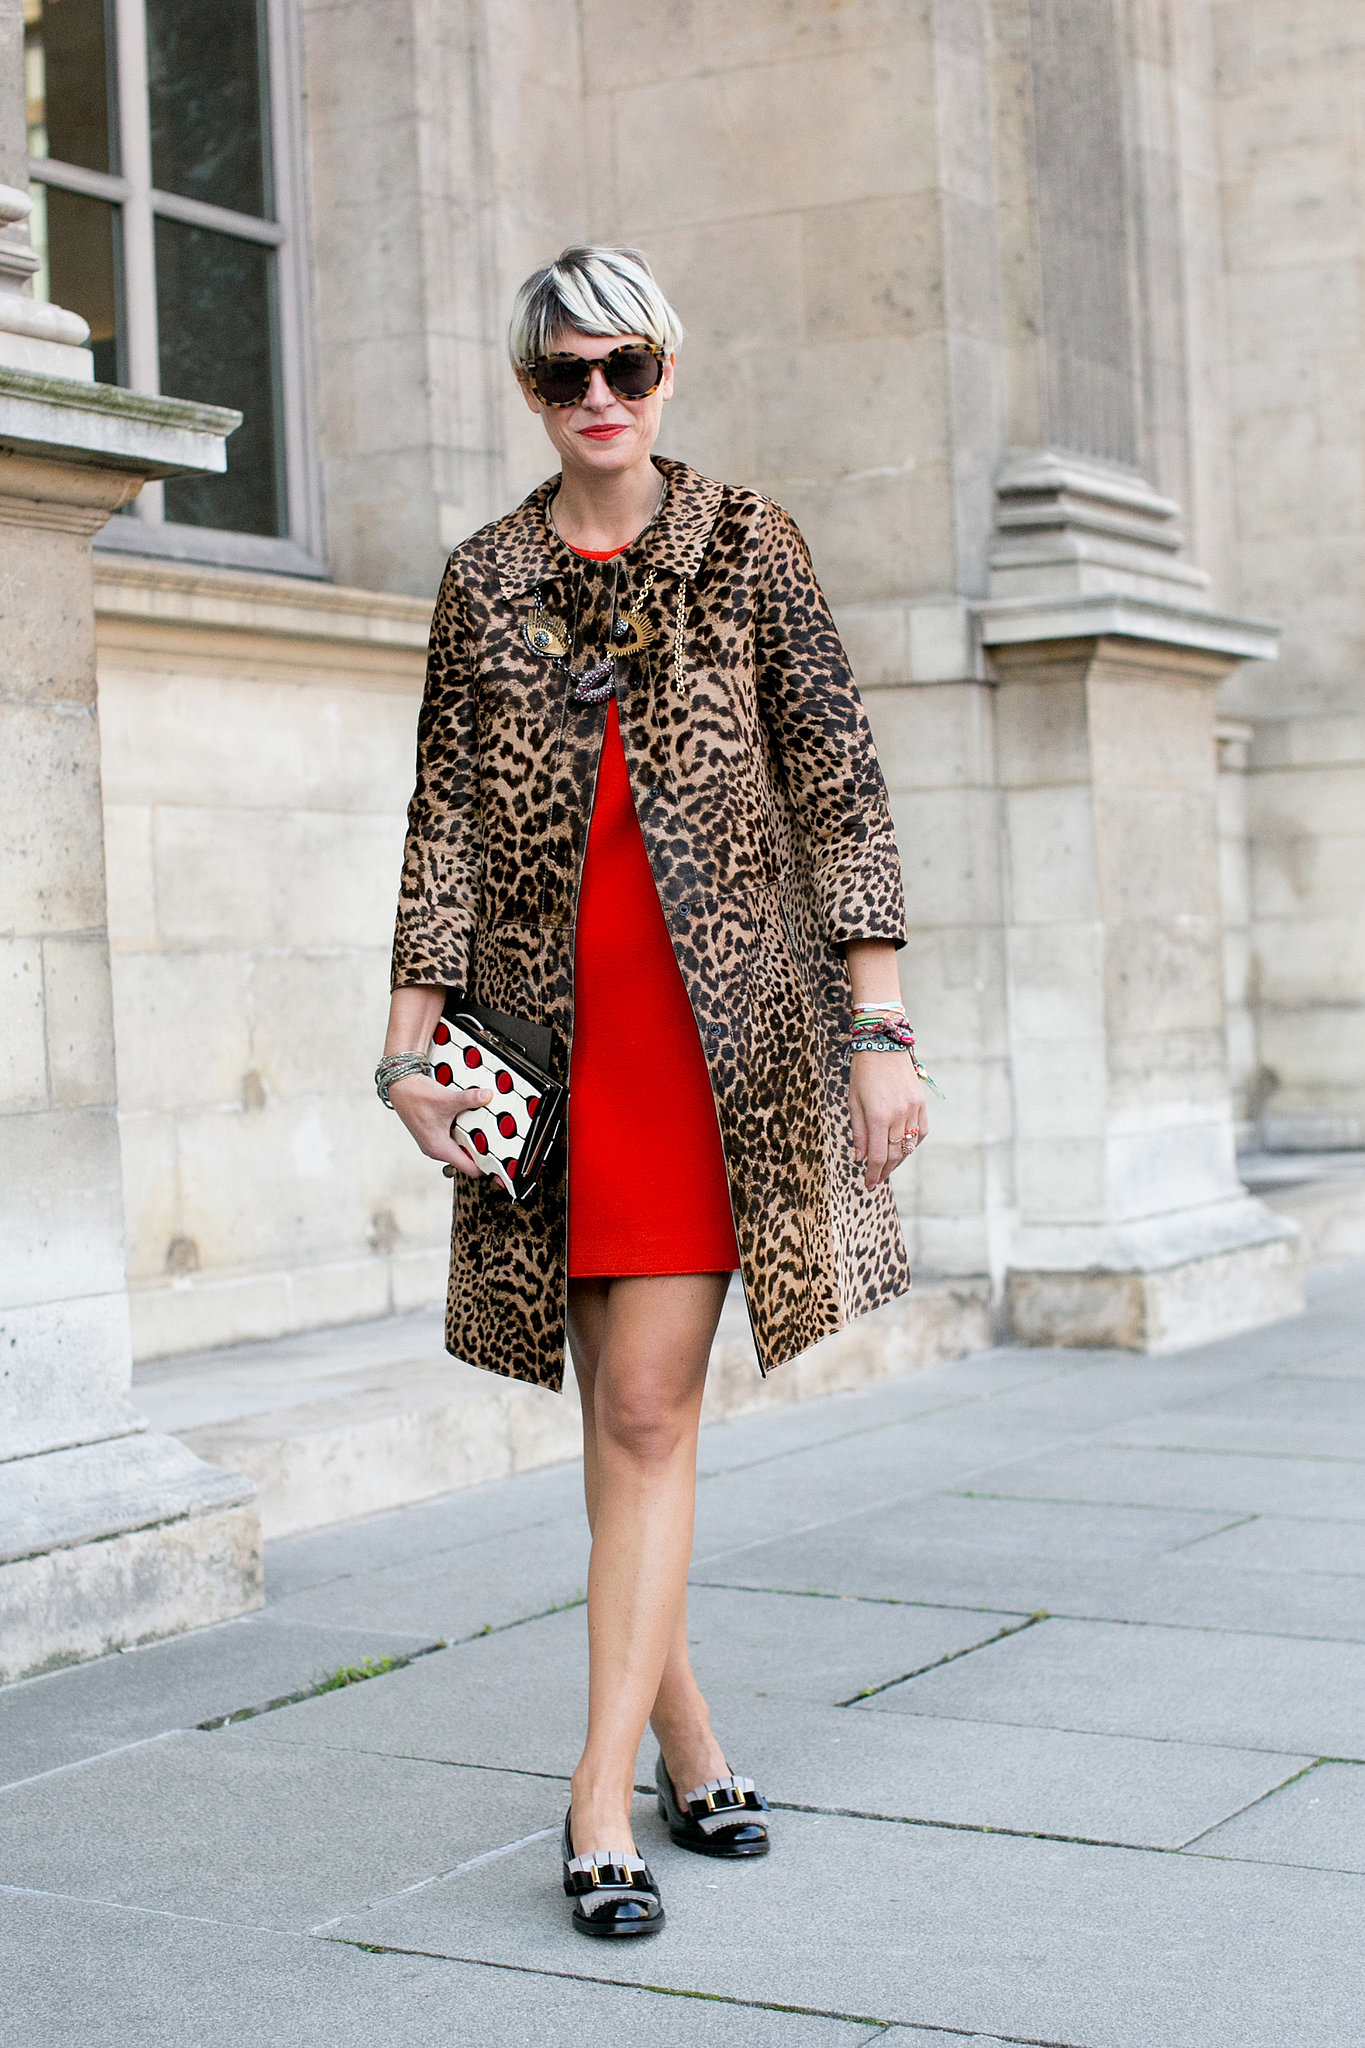 Elisa Nalin knows pairing red and leopard results in a high-impact style.